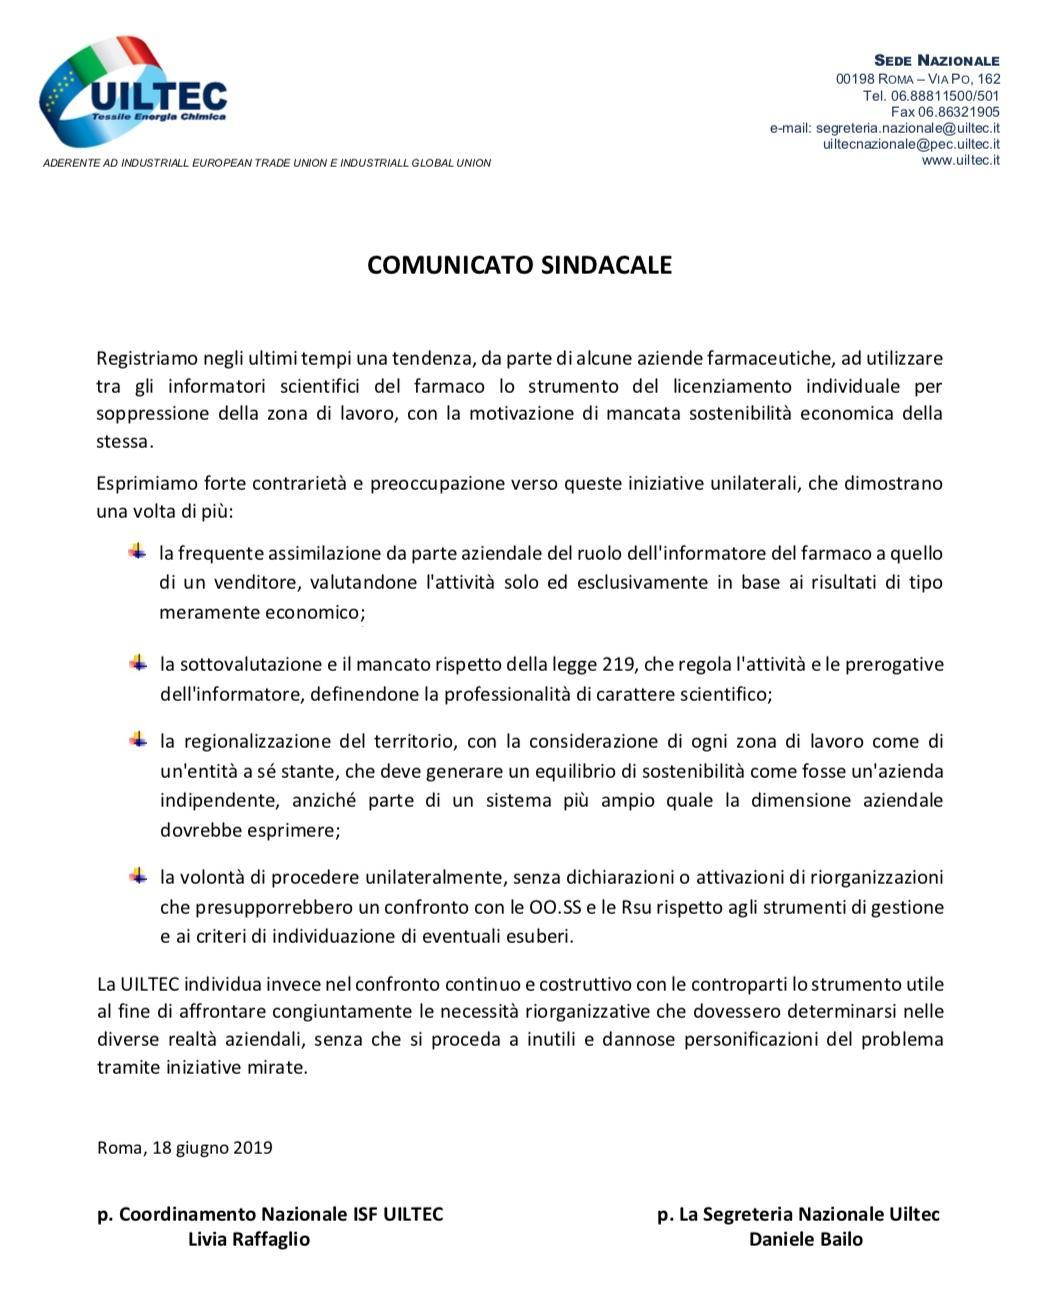 Comunicato sindacale UILTEC - ISF